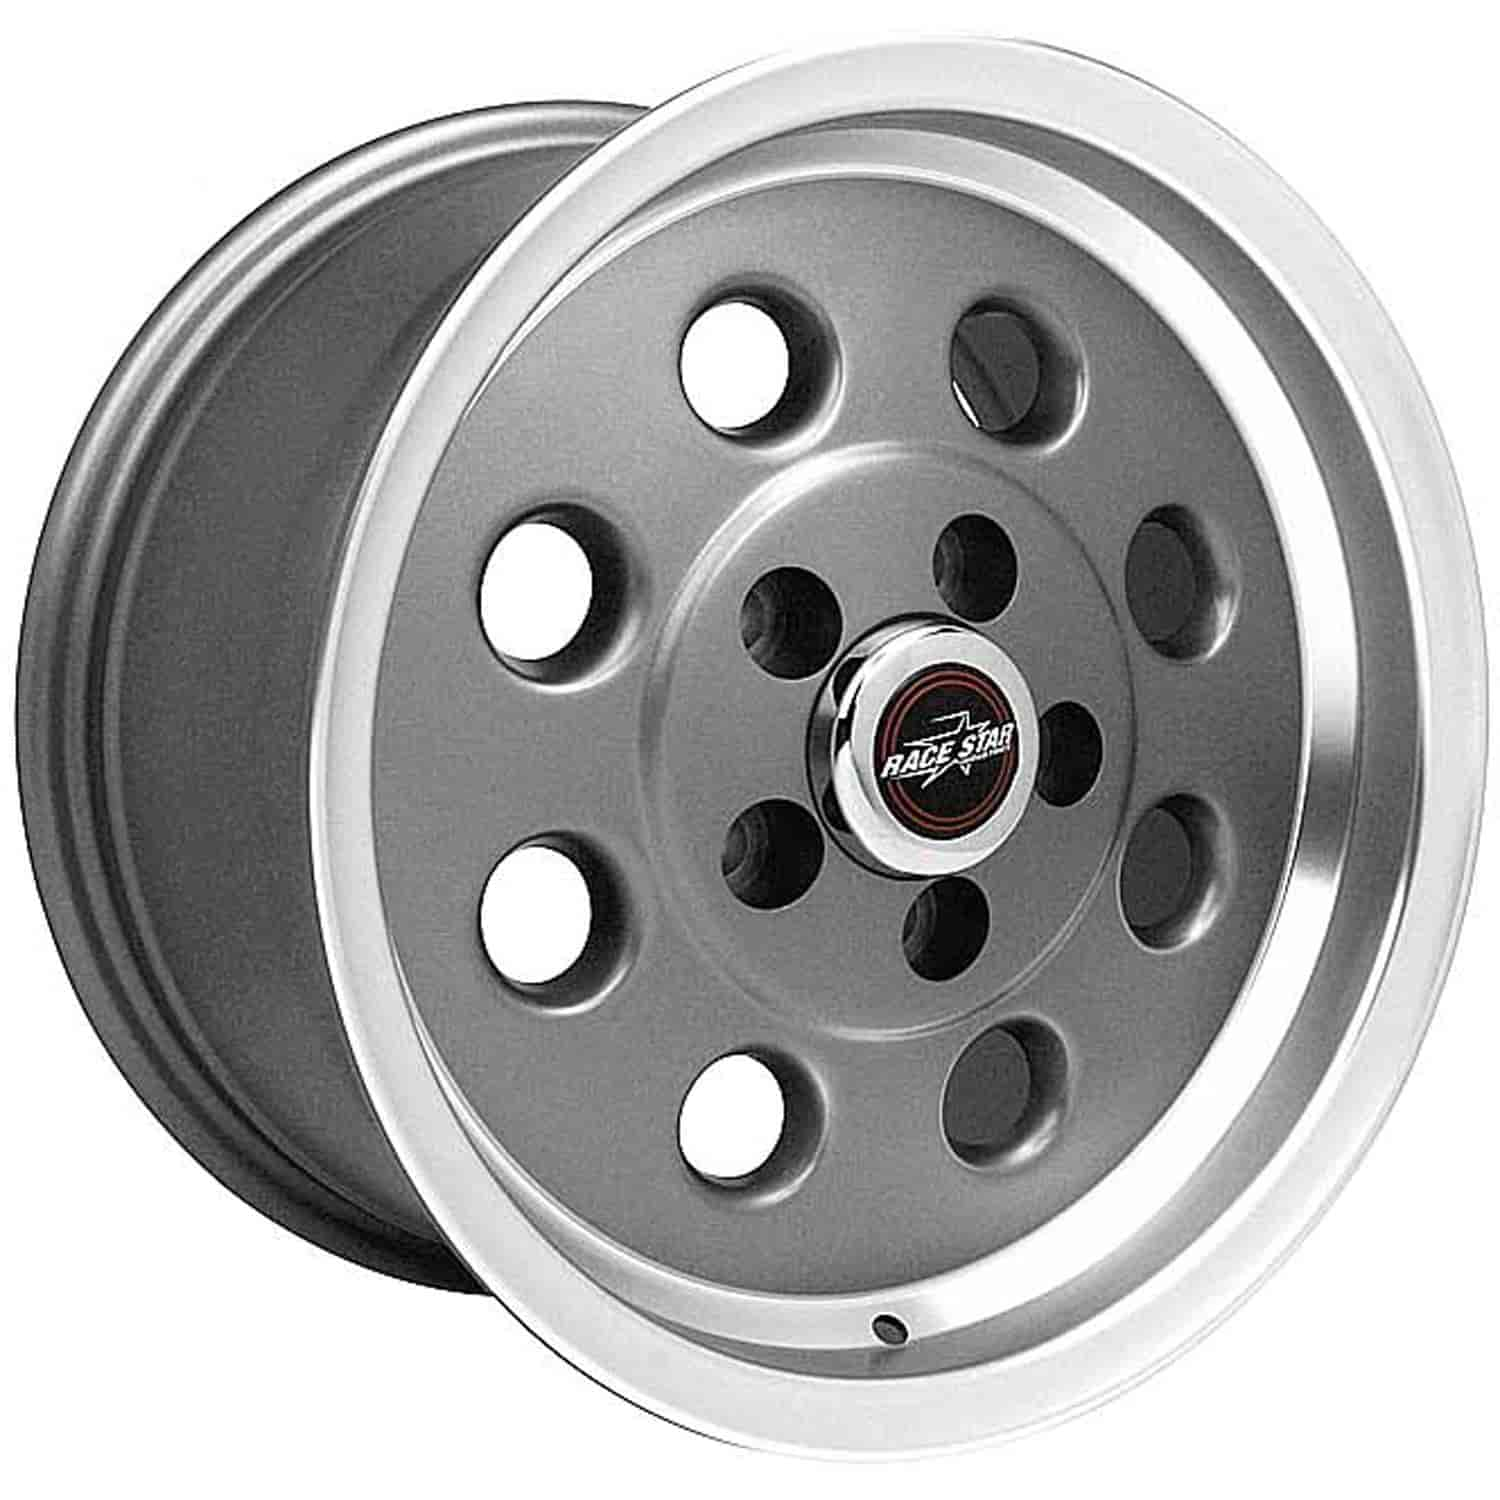 Race Star Wheels 82-510154GP